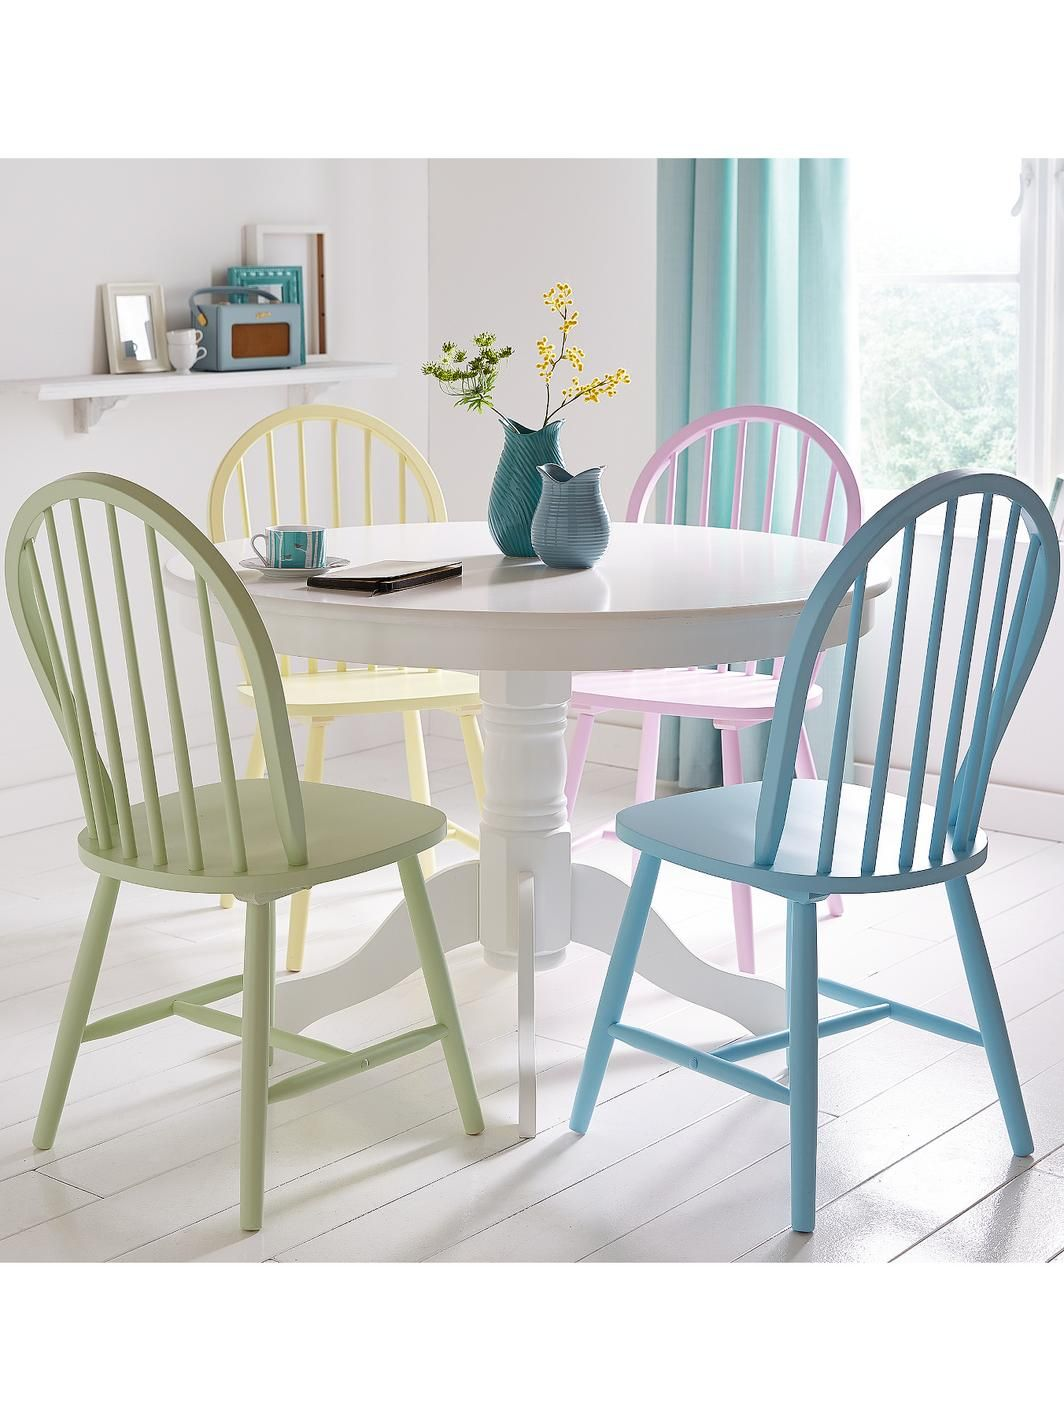 Daisy Circular Dining Table and 9 Chairs Buy and SAVE, http ...